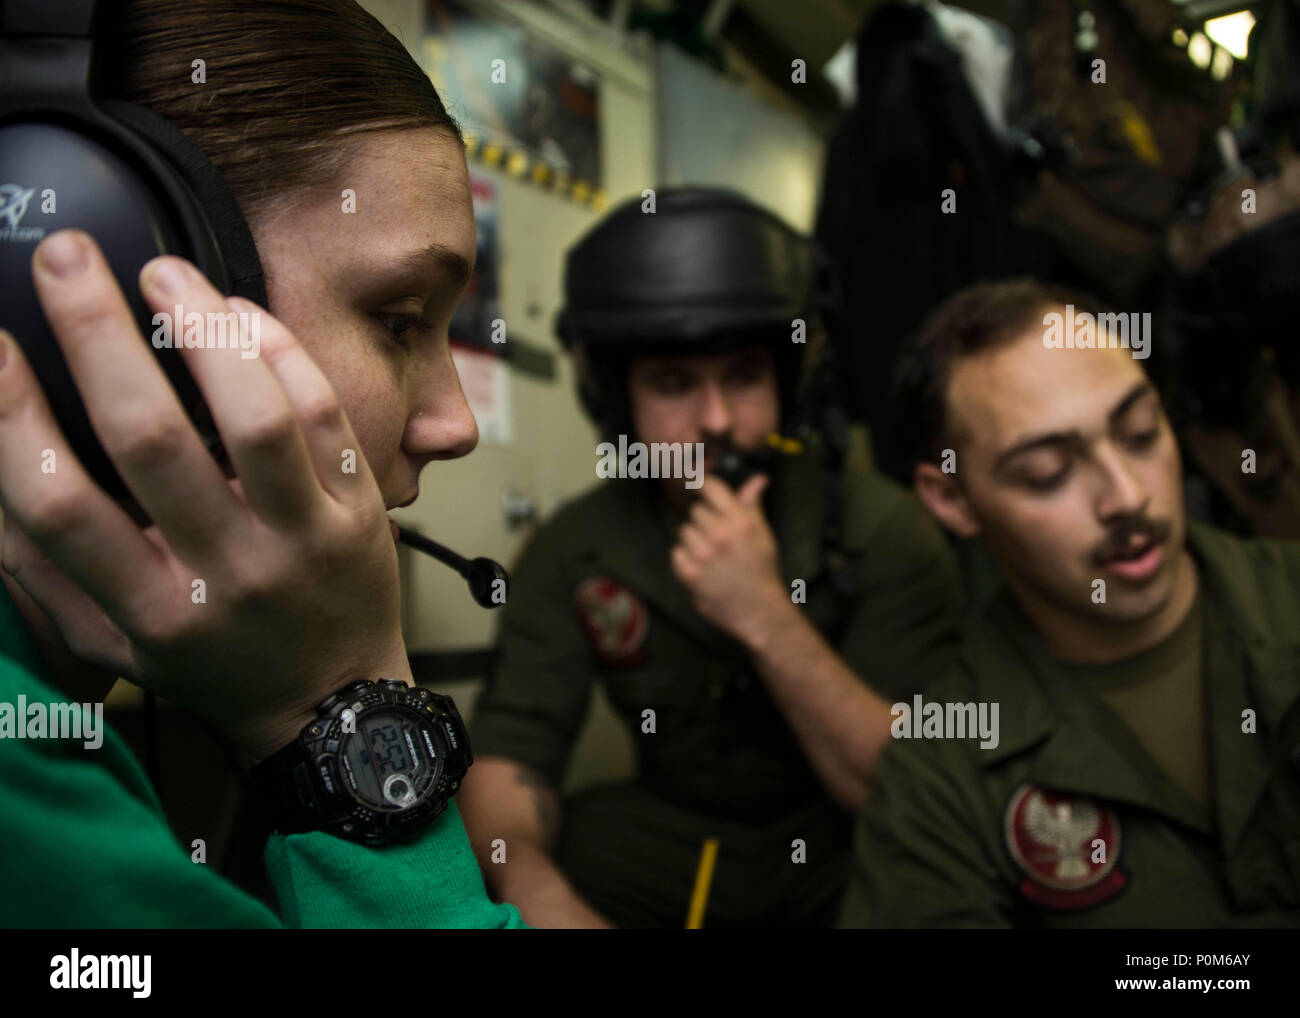 180605-N-ZG607-0043  U.S. 5th FLEET AREA OF OPERATIONS (June 5, 2018) Aircrew Survival Equipmentman 3rd Class Brittaney Spicer, assigned to Helicopter Sea Combat Squadron (HSC) 28, troubleshoots communications and breathing functionality on the HGU-84/P aviators helmet in the flight equipment work center aboard the Wasp-class amphibious assault ship USS Iwo Jima (LHD 7), June 5, 2018. Iwo Jima, homeported in Mayport, Fla., is on deployment to the U.S. 5th Fleet area of operations in support of maritime security operations to reassure allies and partners, and preserve the freedom of navigation  Stock Photo